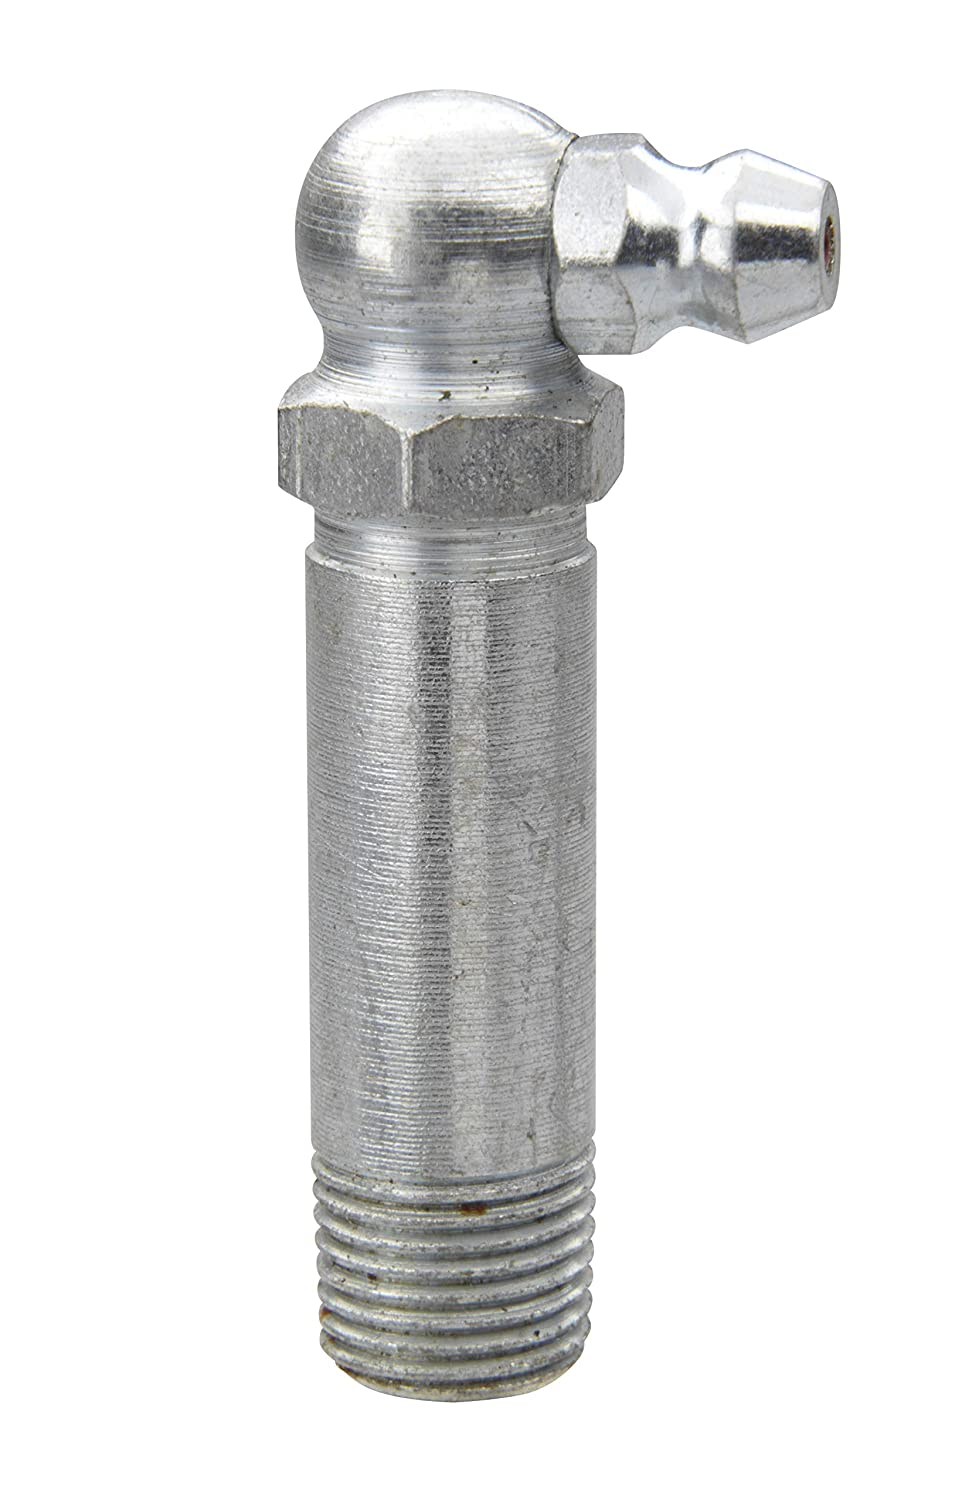 Alemite 1606-B Hydraulic Loose Fitting 1//8 PTF Hex Size 7//16 Length 1-13//16 Shank Length 1-1//4 90 Degree